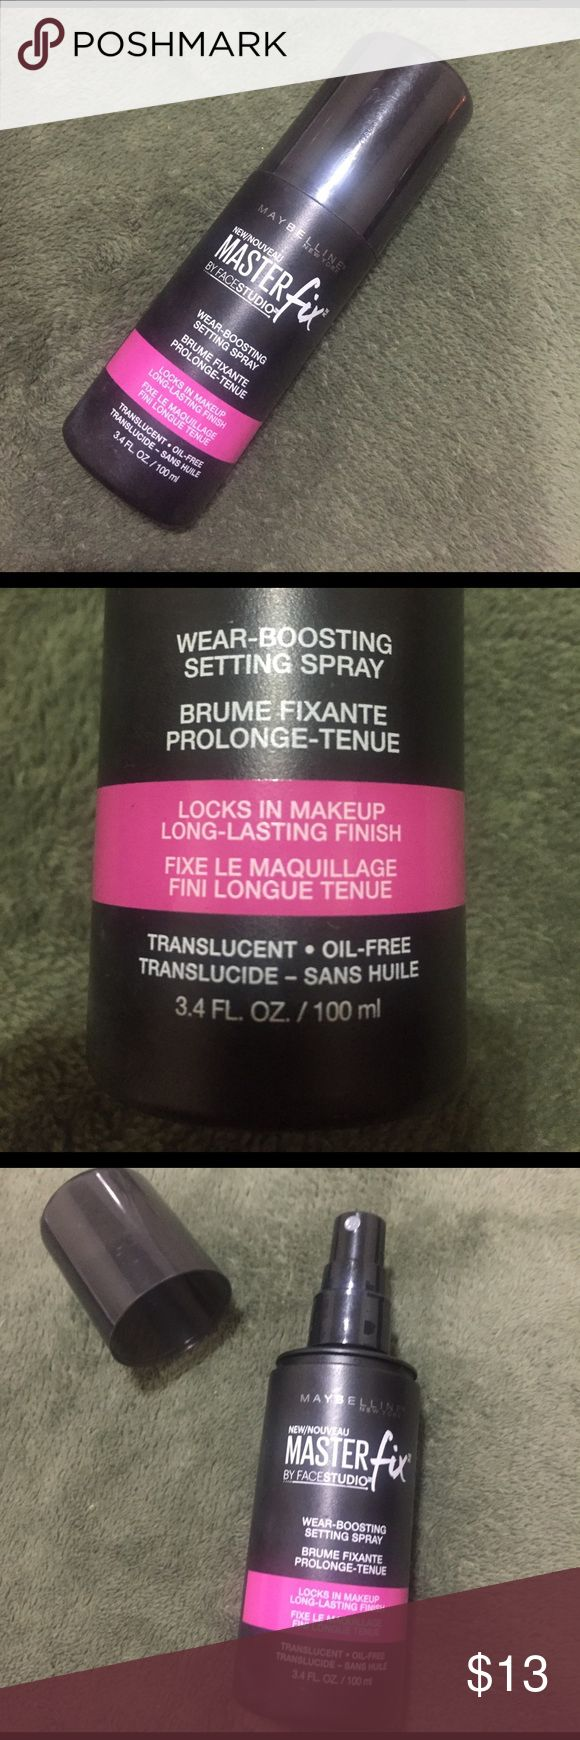 Maybelline MasterFix By FaceStudio. Wear Boosting Setting Spray. Locks In Makeup for Long Lasting Finish. Brand New. Never used Maybelline Makeup